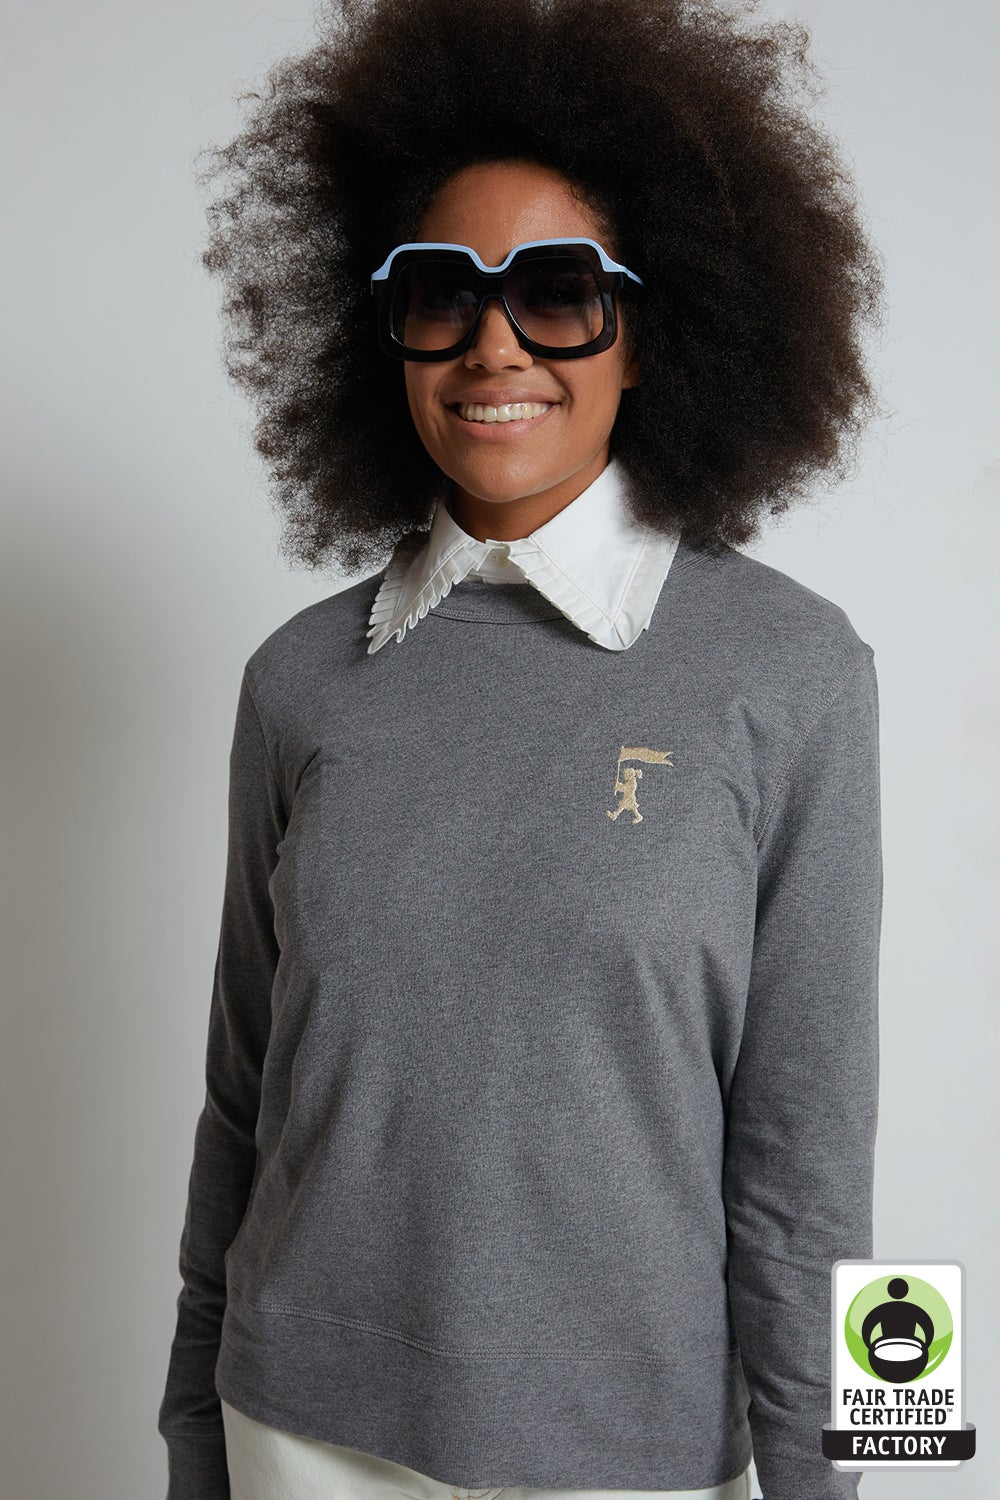 Embroidered Marching Girl Organic Cotton Sweatshirt